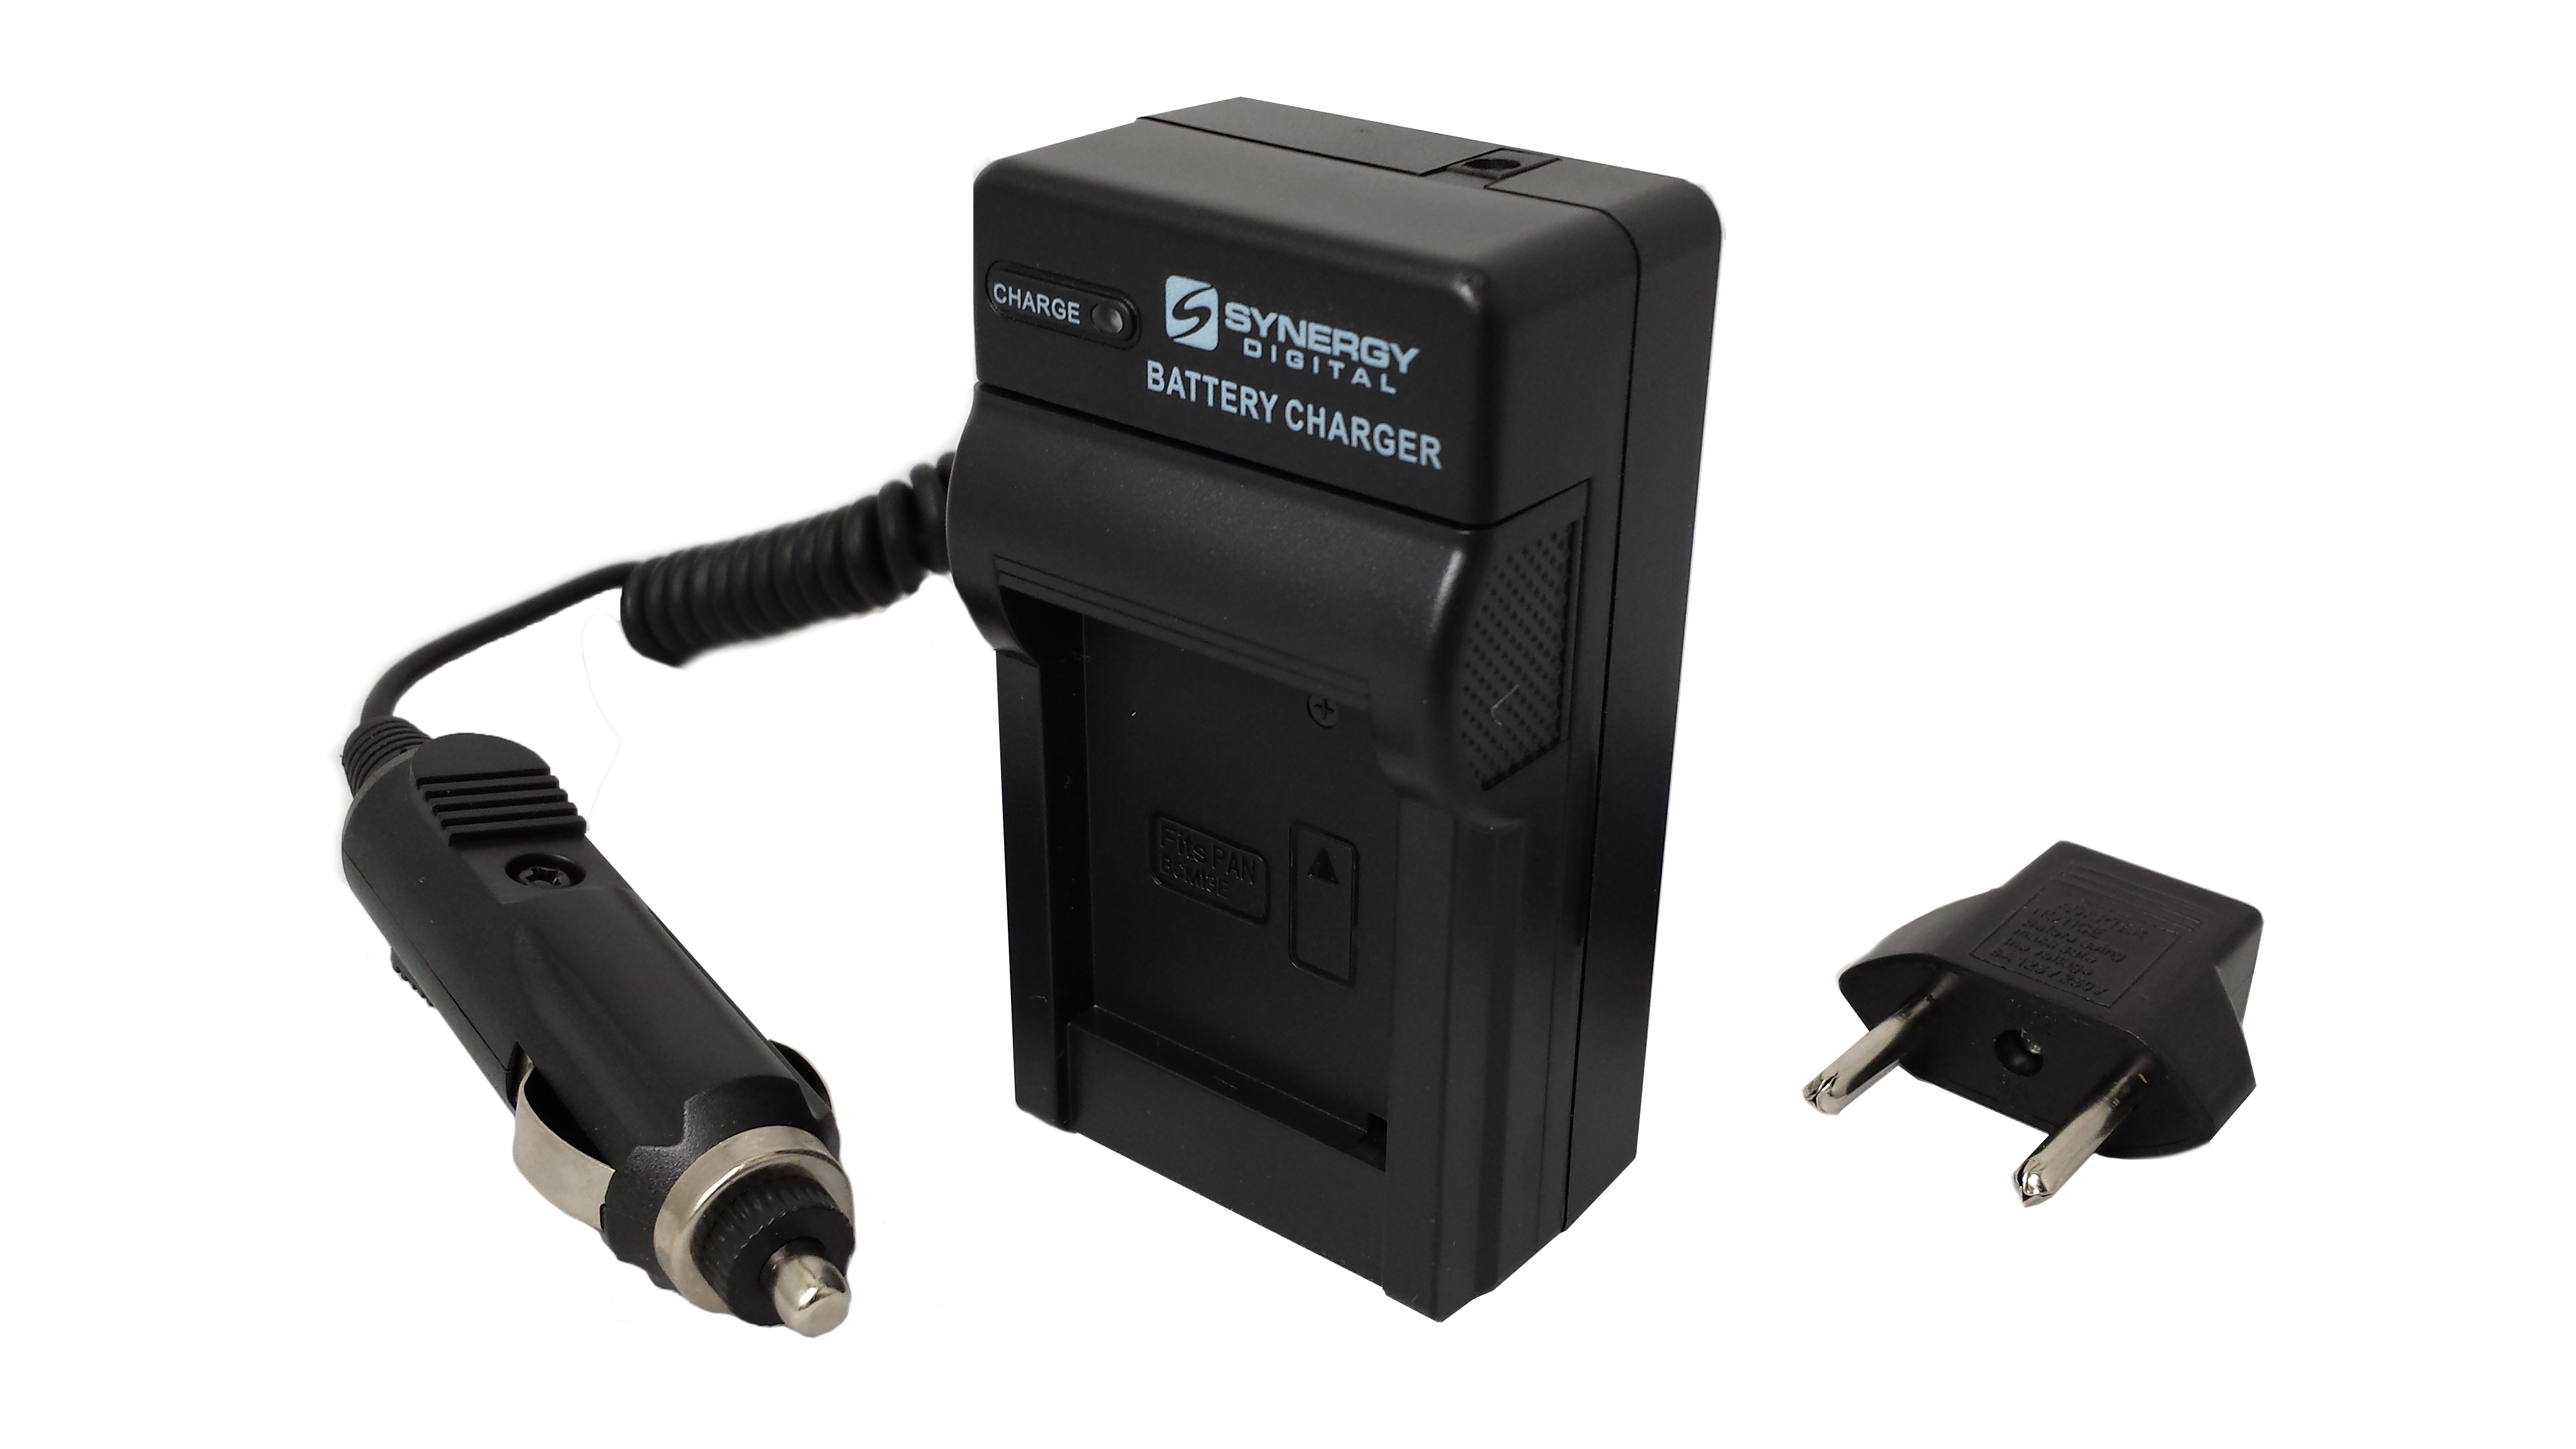 Synergy Digital Canon G45Hi Camcorder Battery Charger (110/220v with Car & EU adapters) - Replacement Charger for Canon BP-915, BP-930, BP-945 - at Sears.com